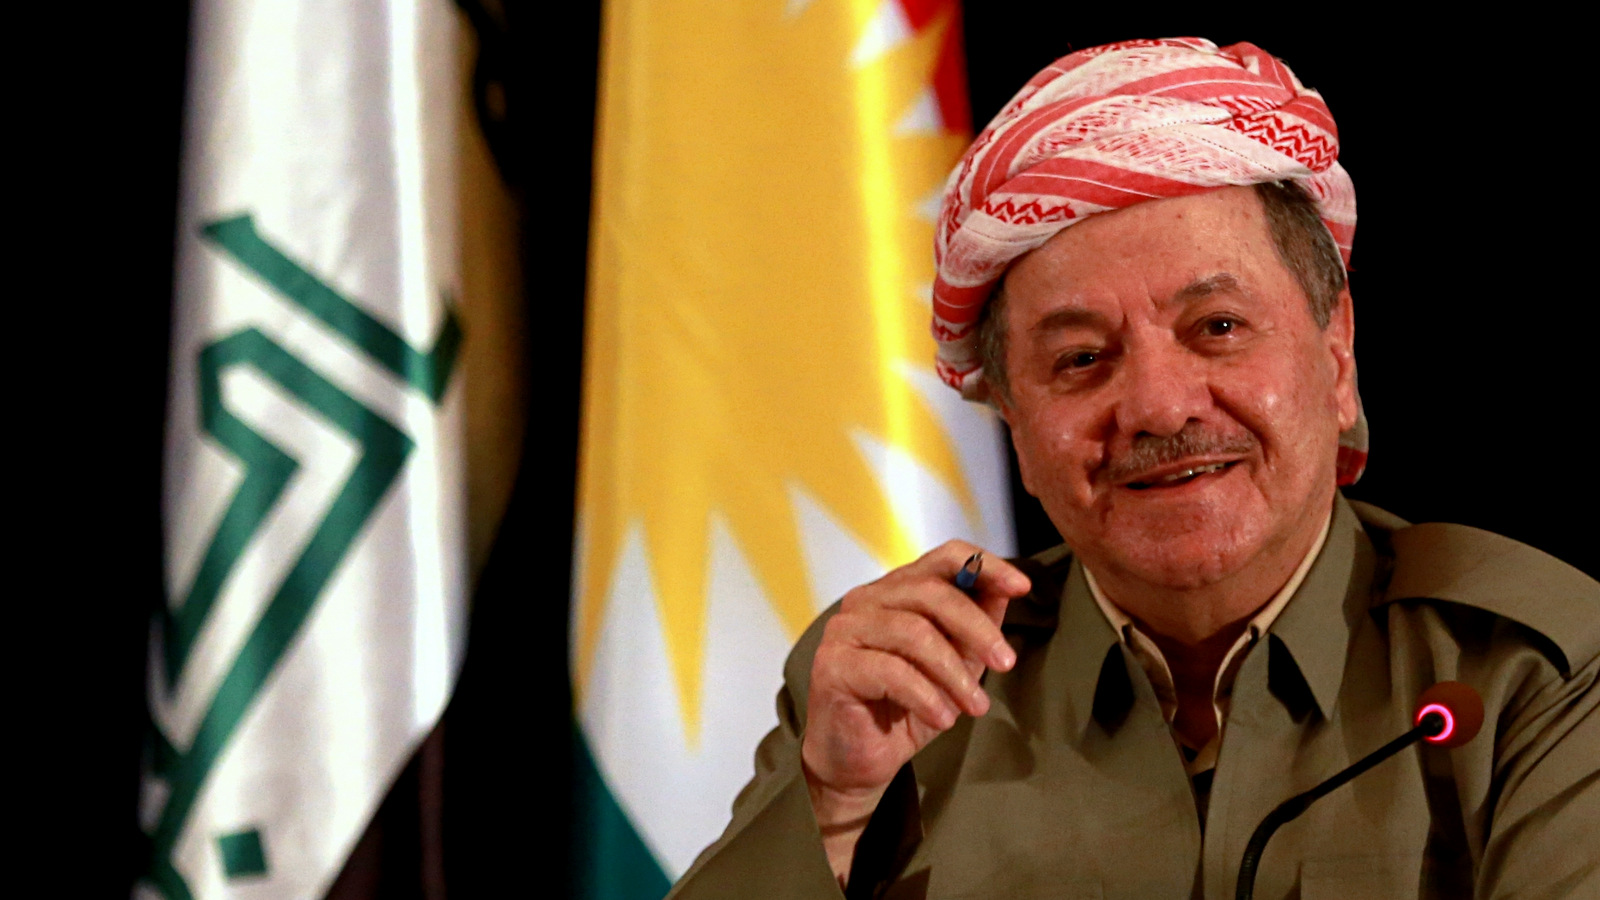 "Massoud Barzani, speaks to reporters during a press conference at the Salah al-Din resort, in Irbil, Iraq, Sunday, Sept. 24, 2017. Barzani said Sunday, that the controversial vote on independence will go ahead as planned and that while the vote will be the first step in a long process to negotiate independence, the region's ""partnership"" with the Iraqi central government in Baghdad is over. (AP Photo/Khalid Mohammed)"